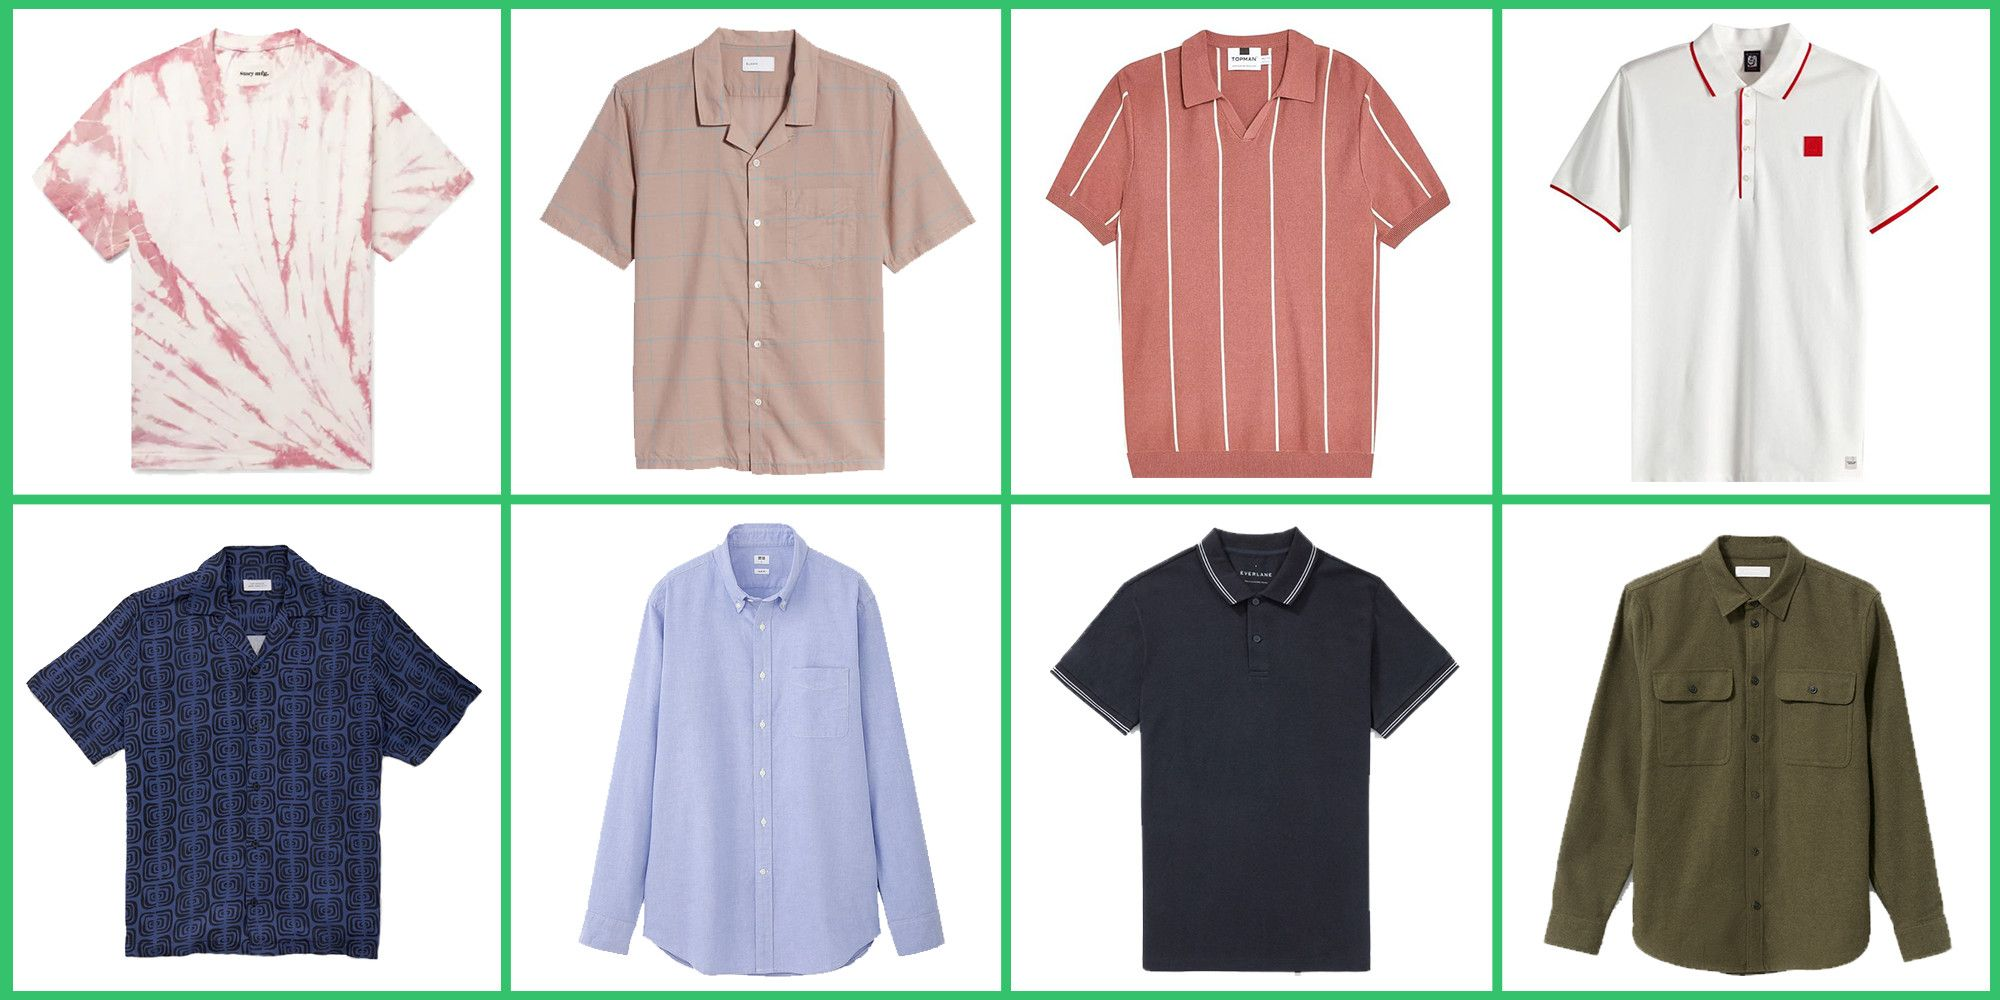 The 21 Shirts Under $100 You Need in Your Closet